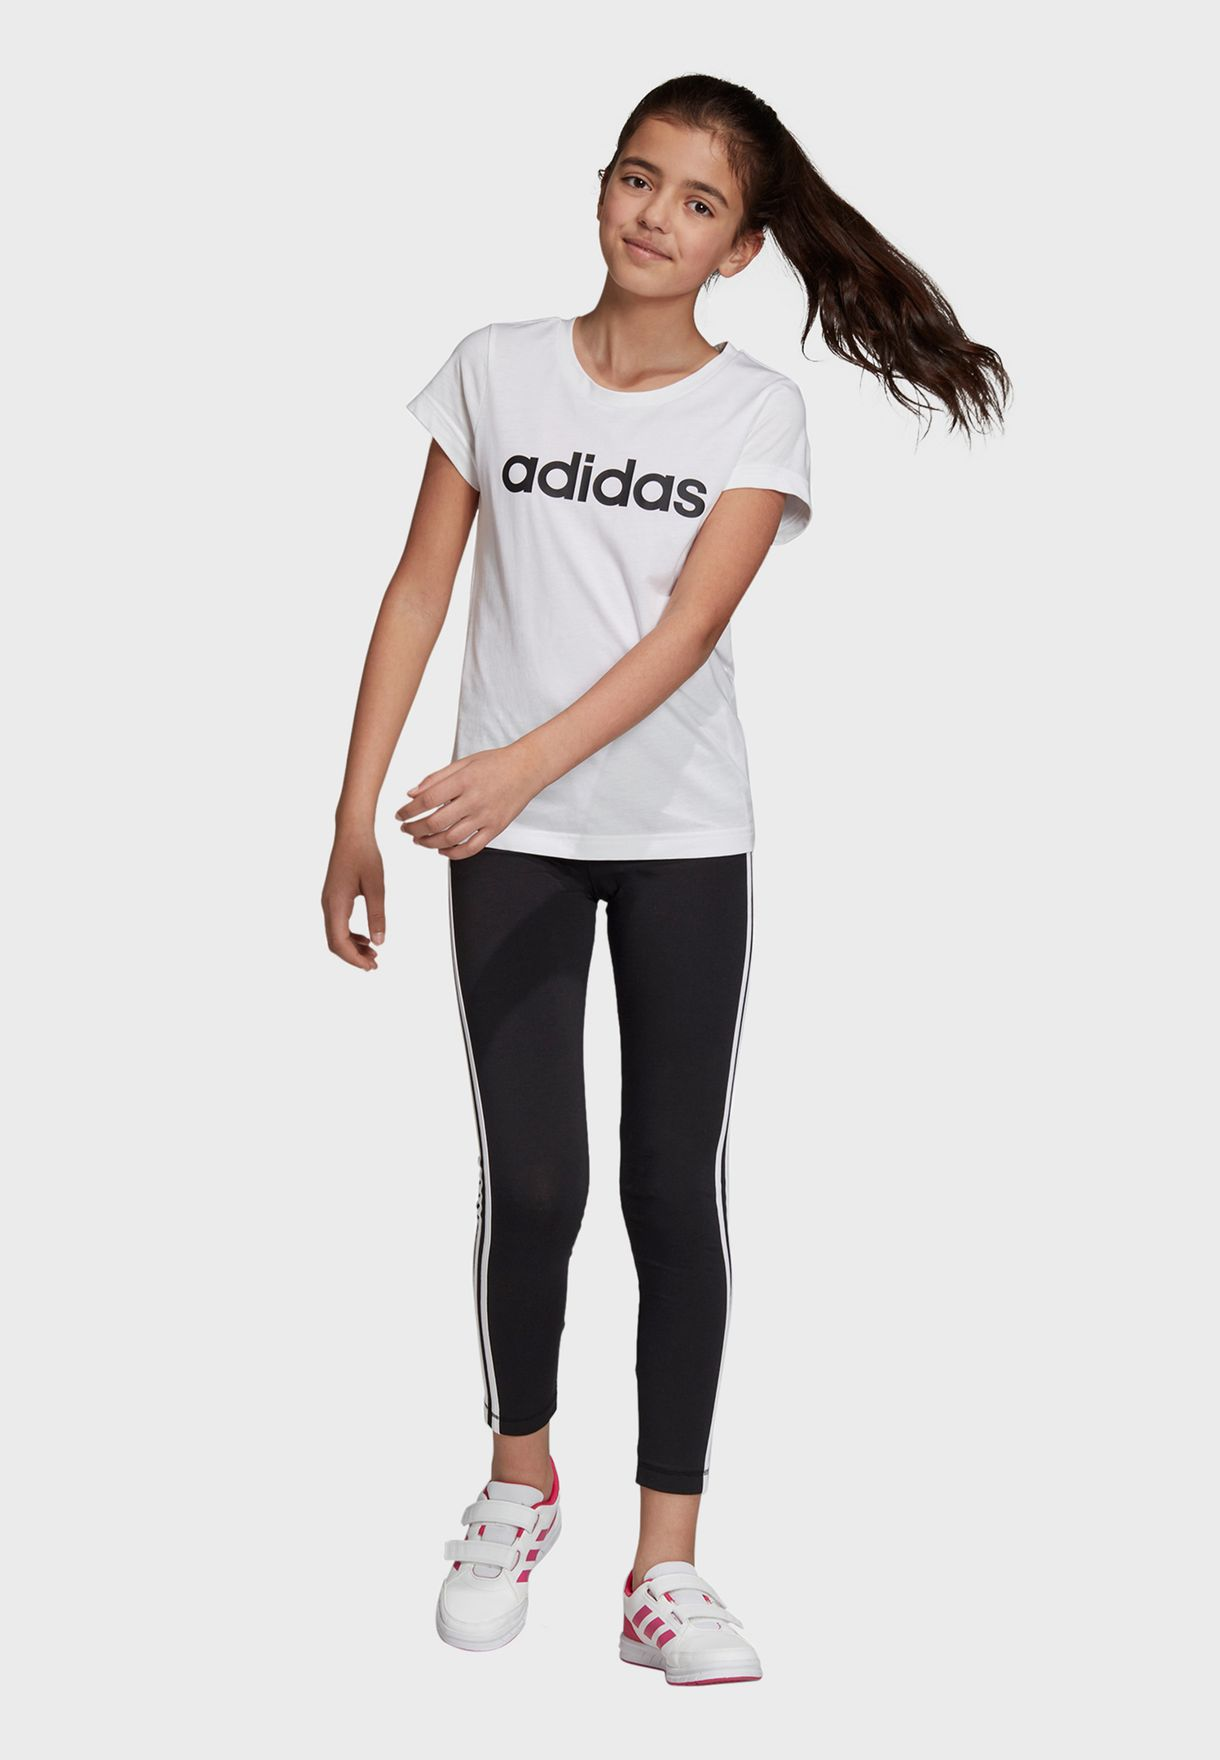 Essentials Sports Women's T-Shirt